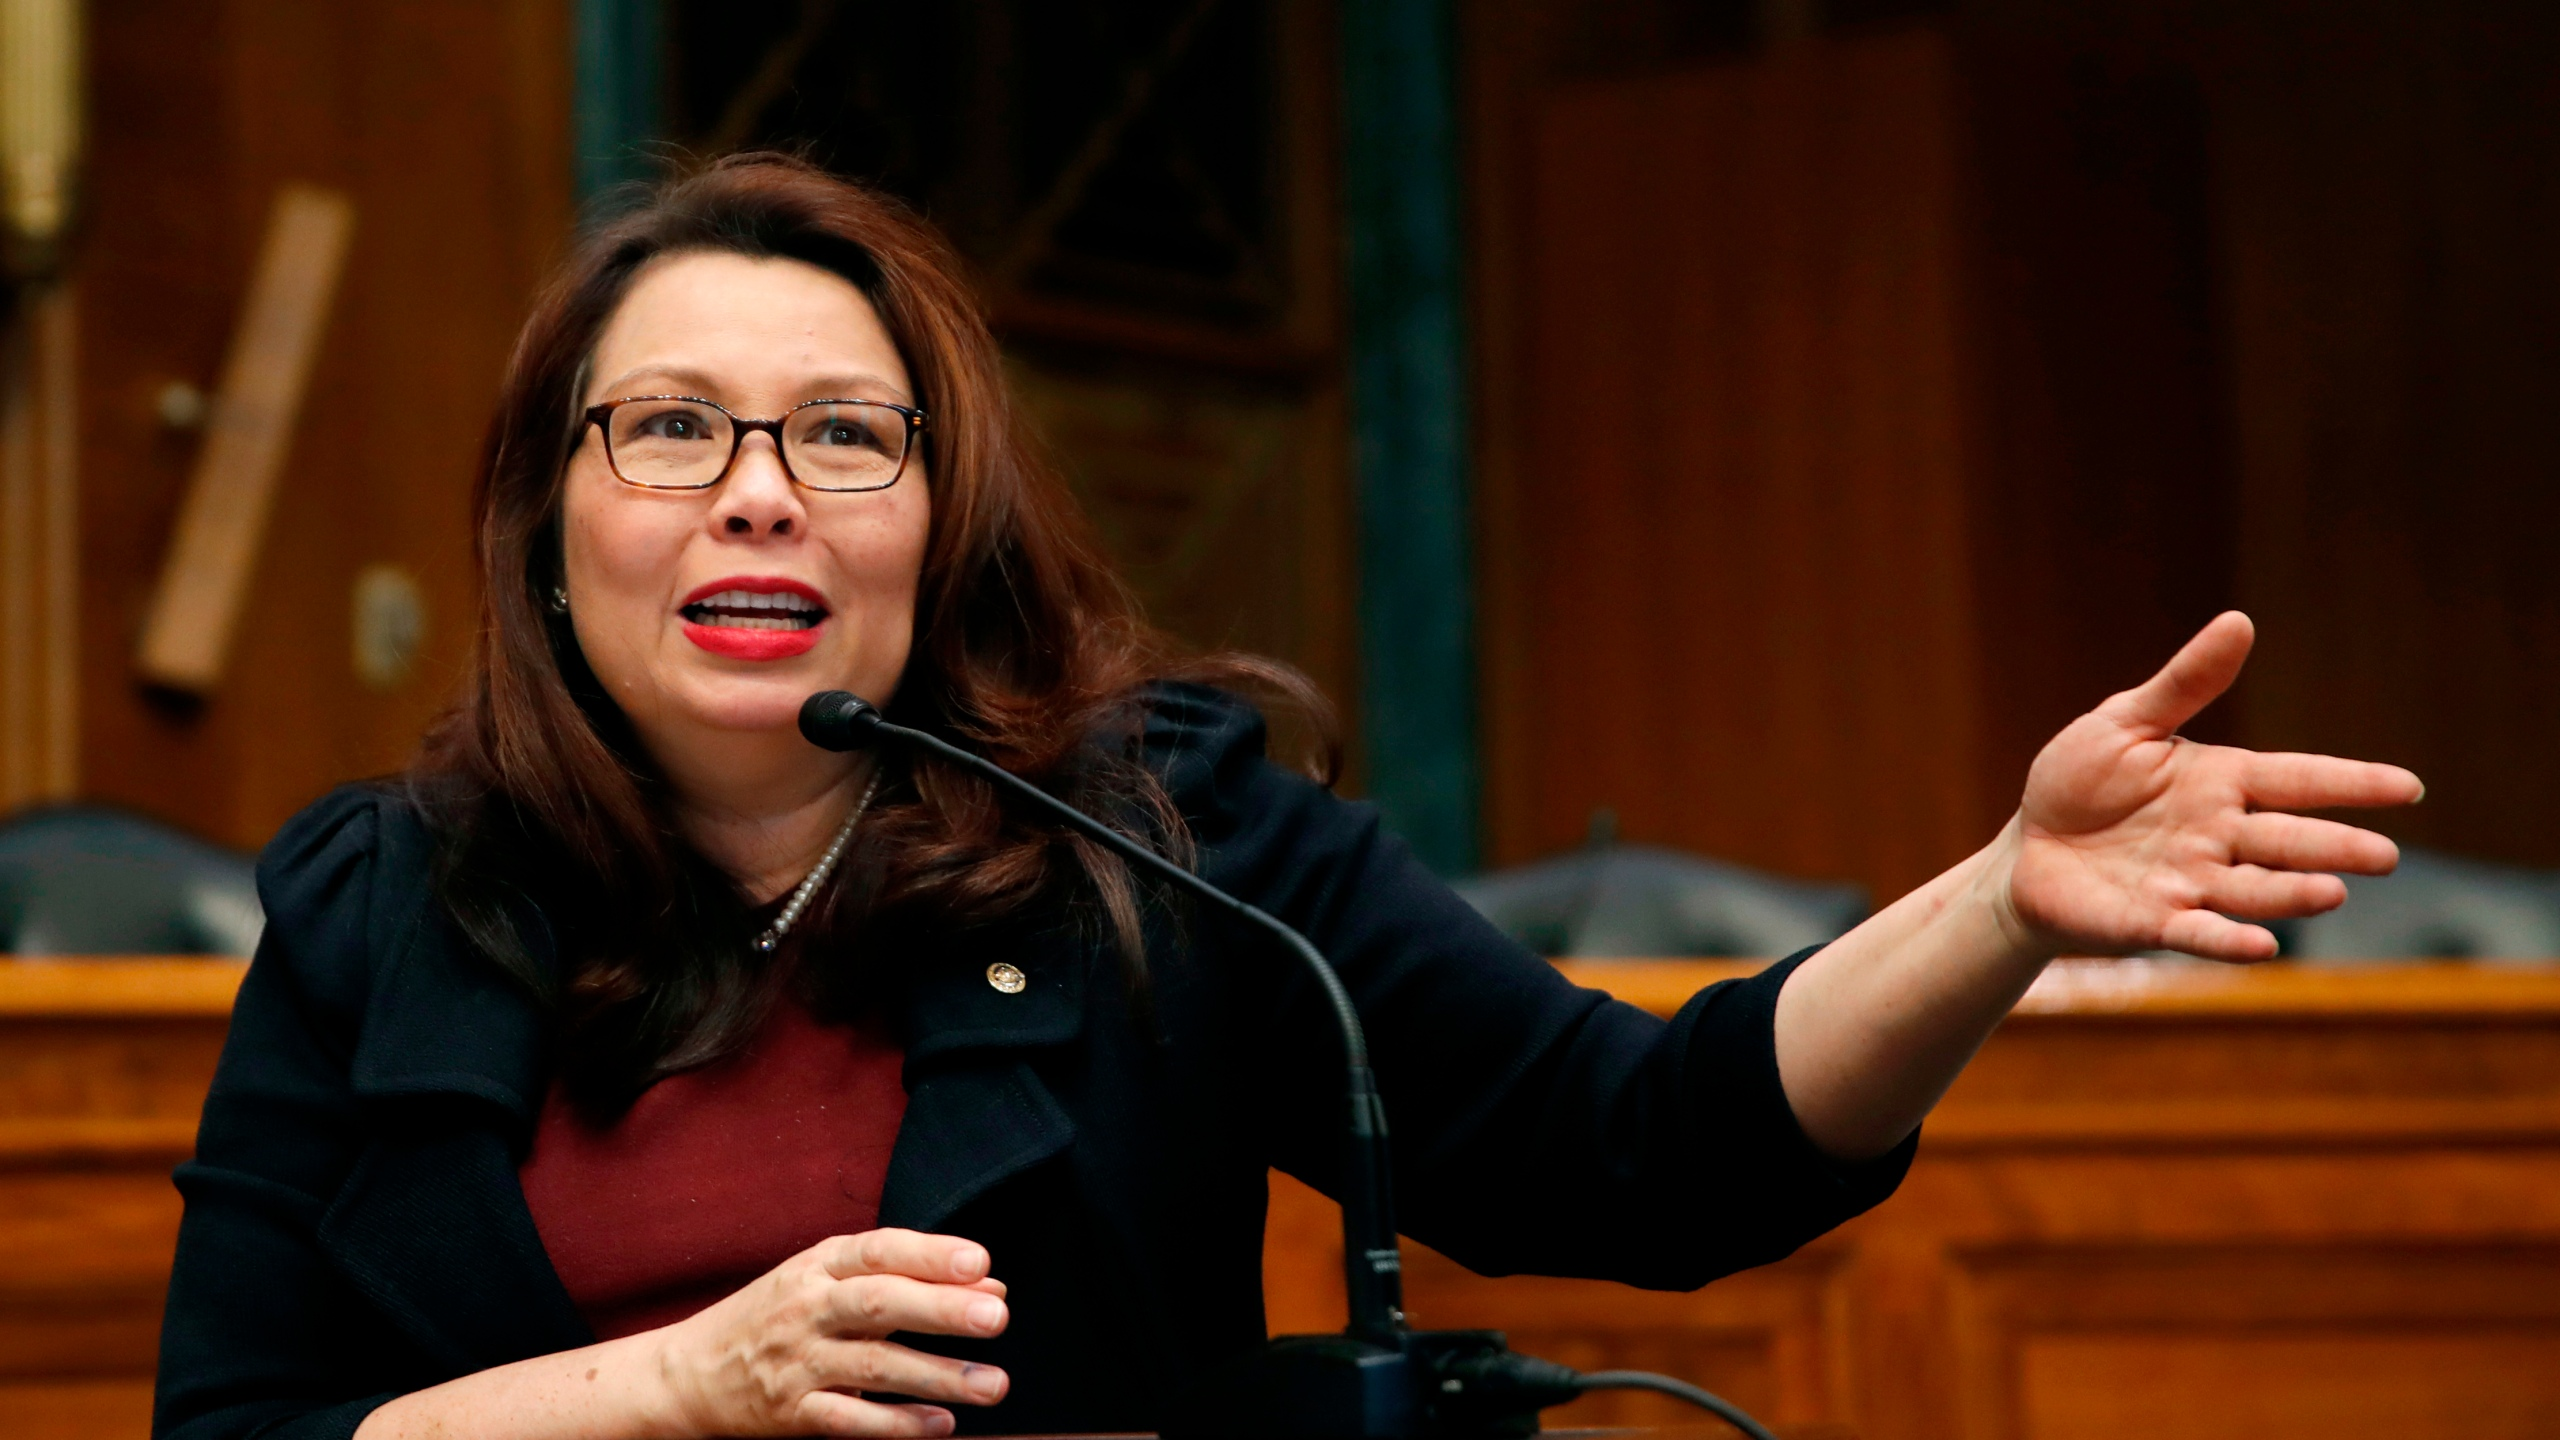 Senate_Duckworth_52487-159532.jpg01952806